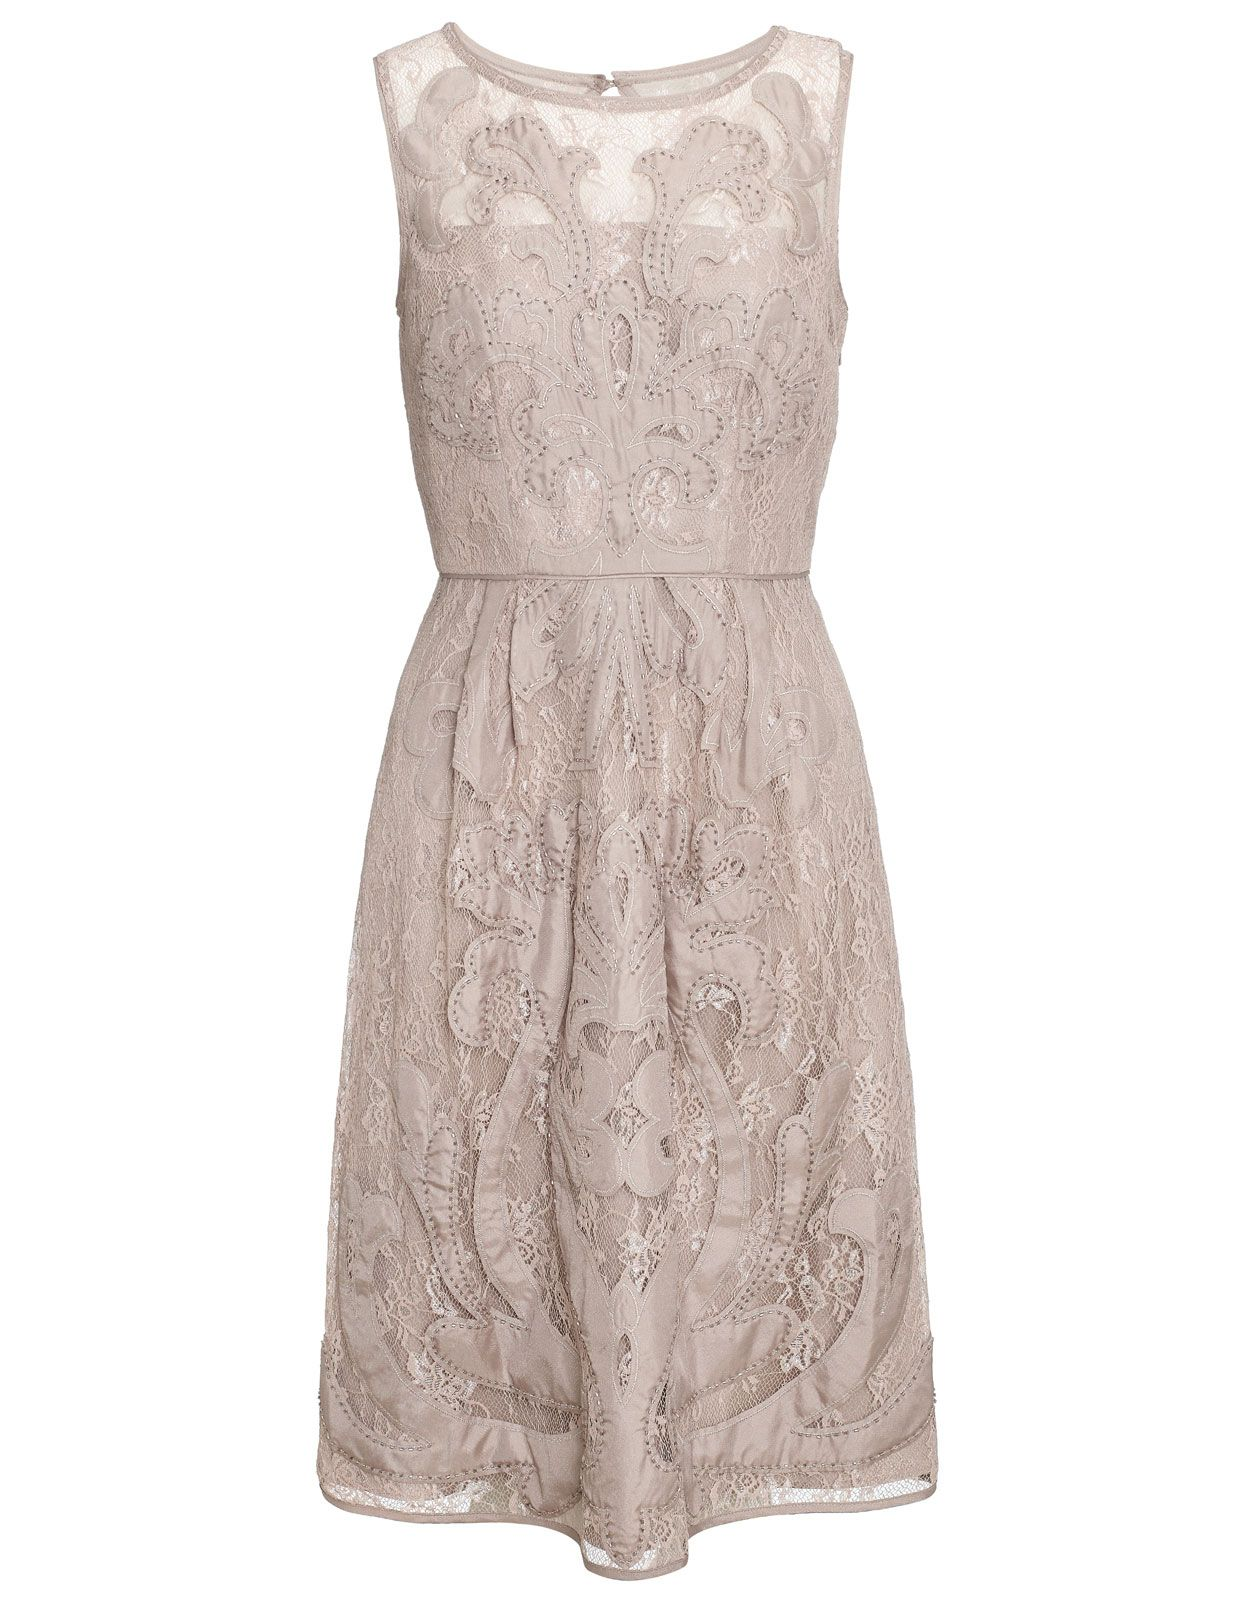 Romantic soft and elegant beautiful lace trend dress complete